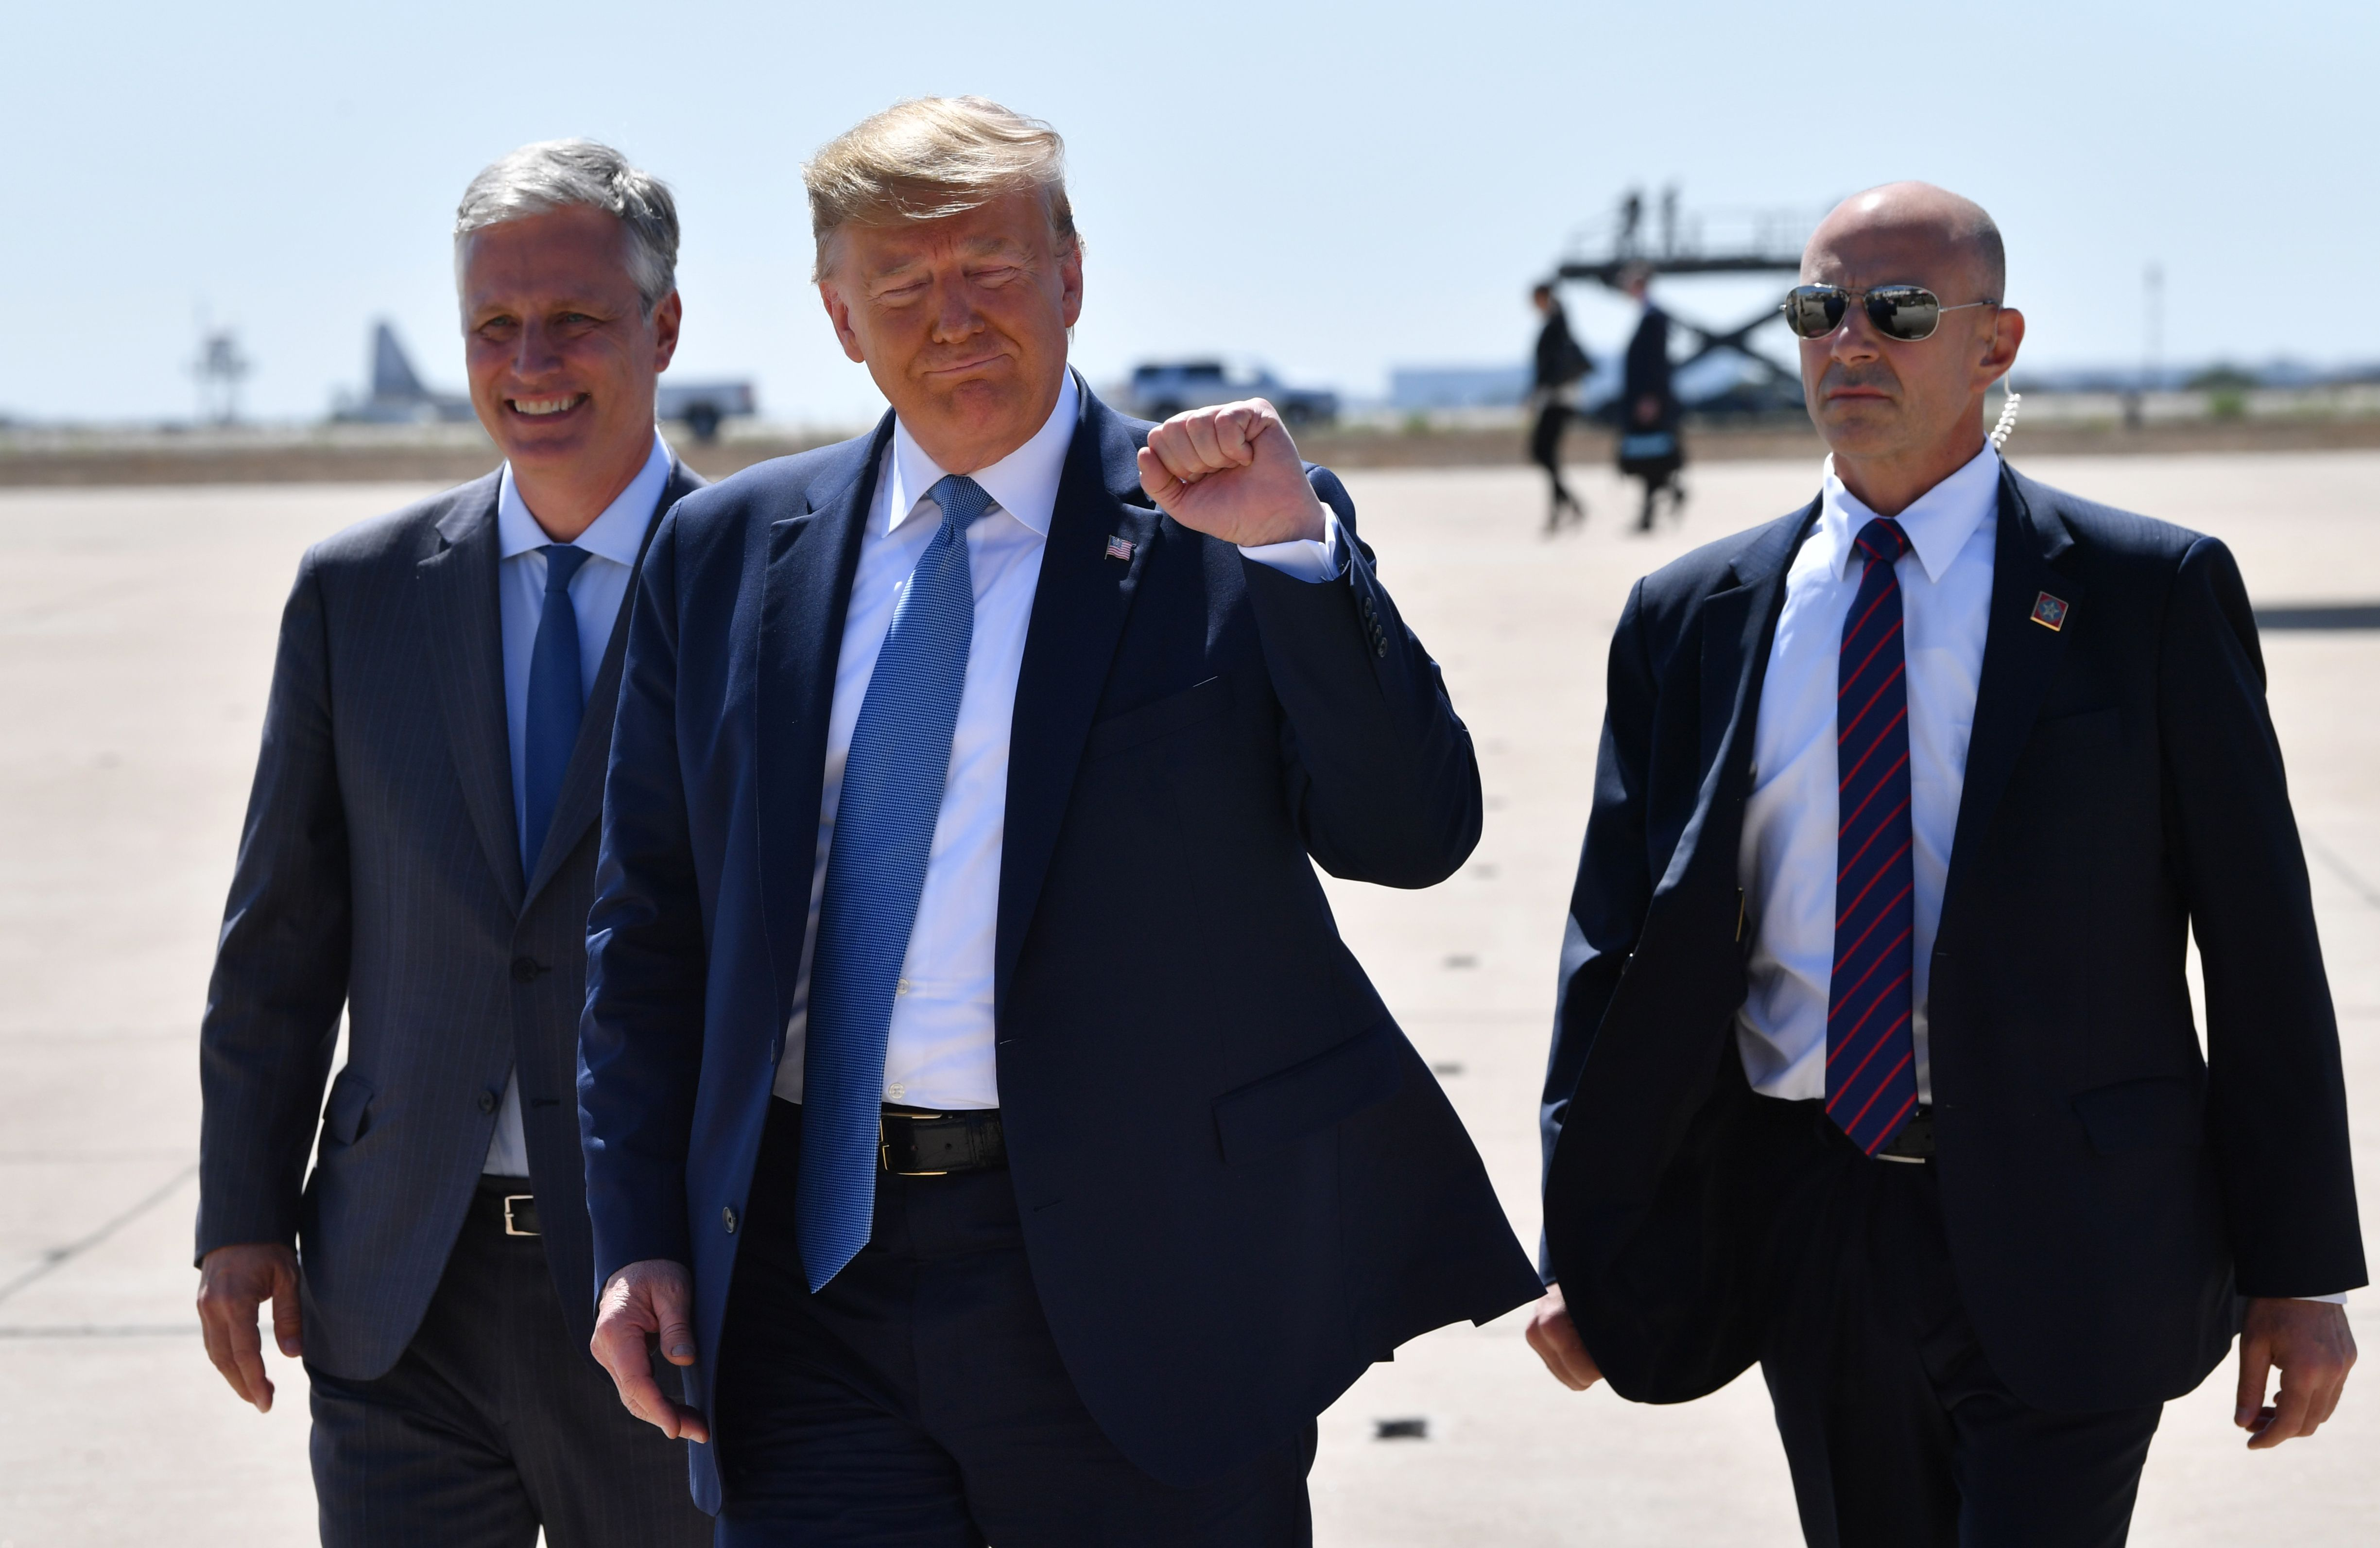 President Donald Trump, holding up a fist, walks from his plane to his car  with two other men at the San Diego airport.